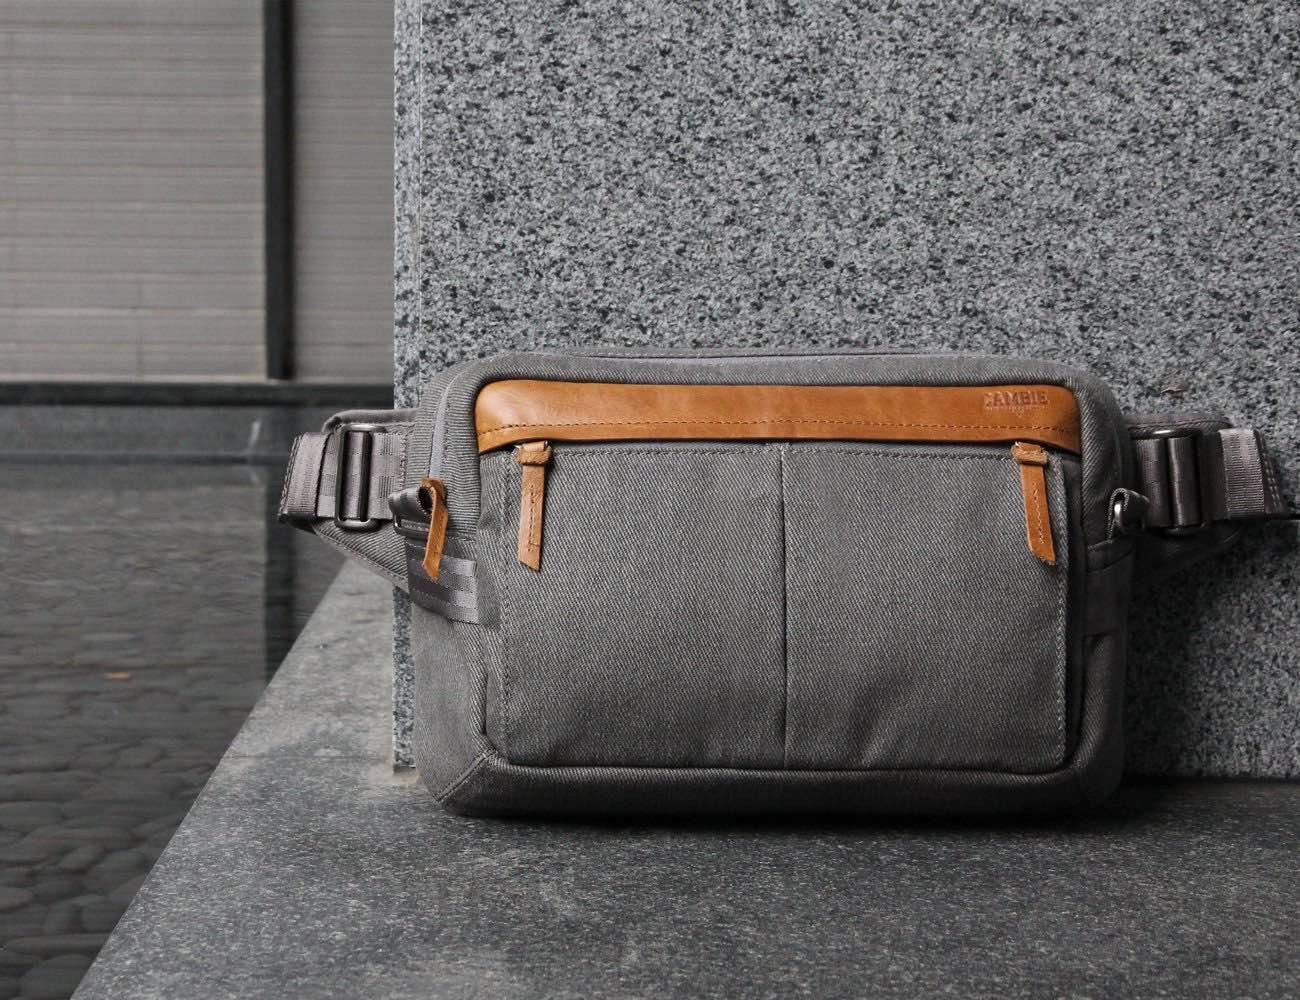 Urban Pack – A Versatile 4-in-1 Minimalist Field Bag